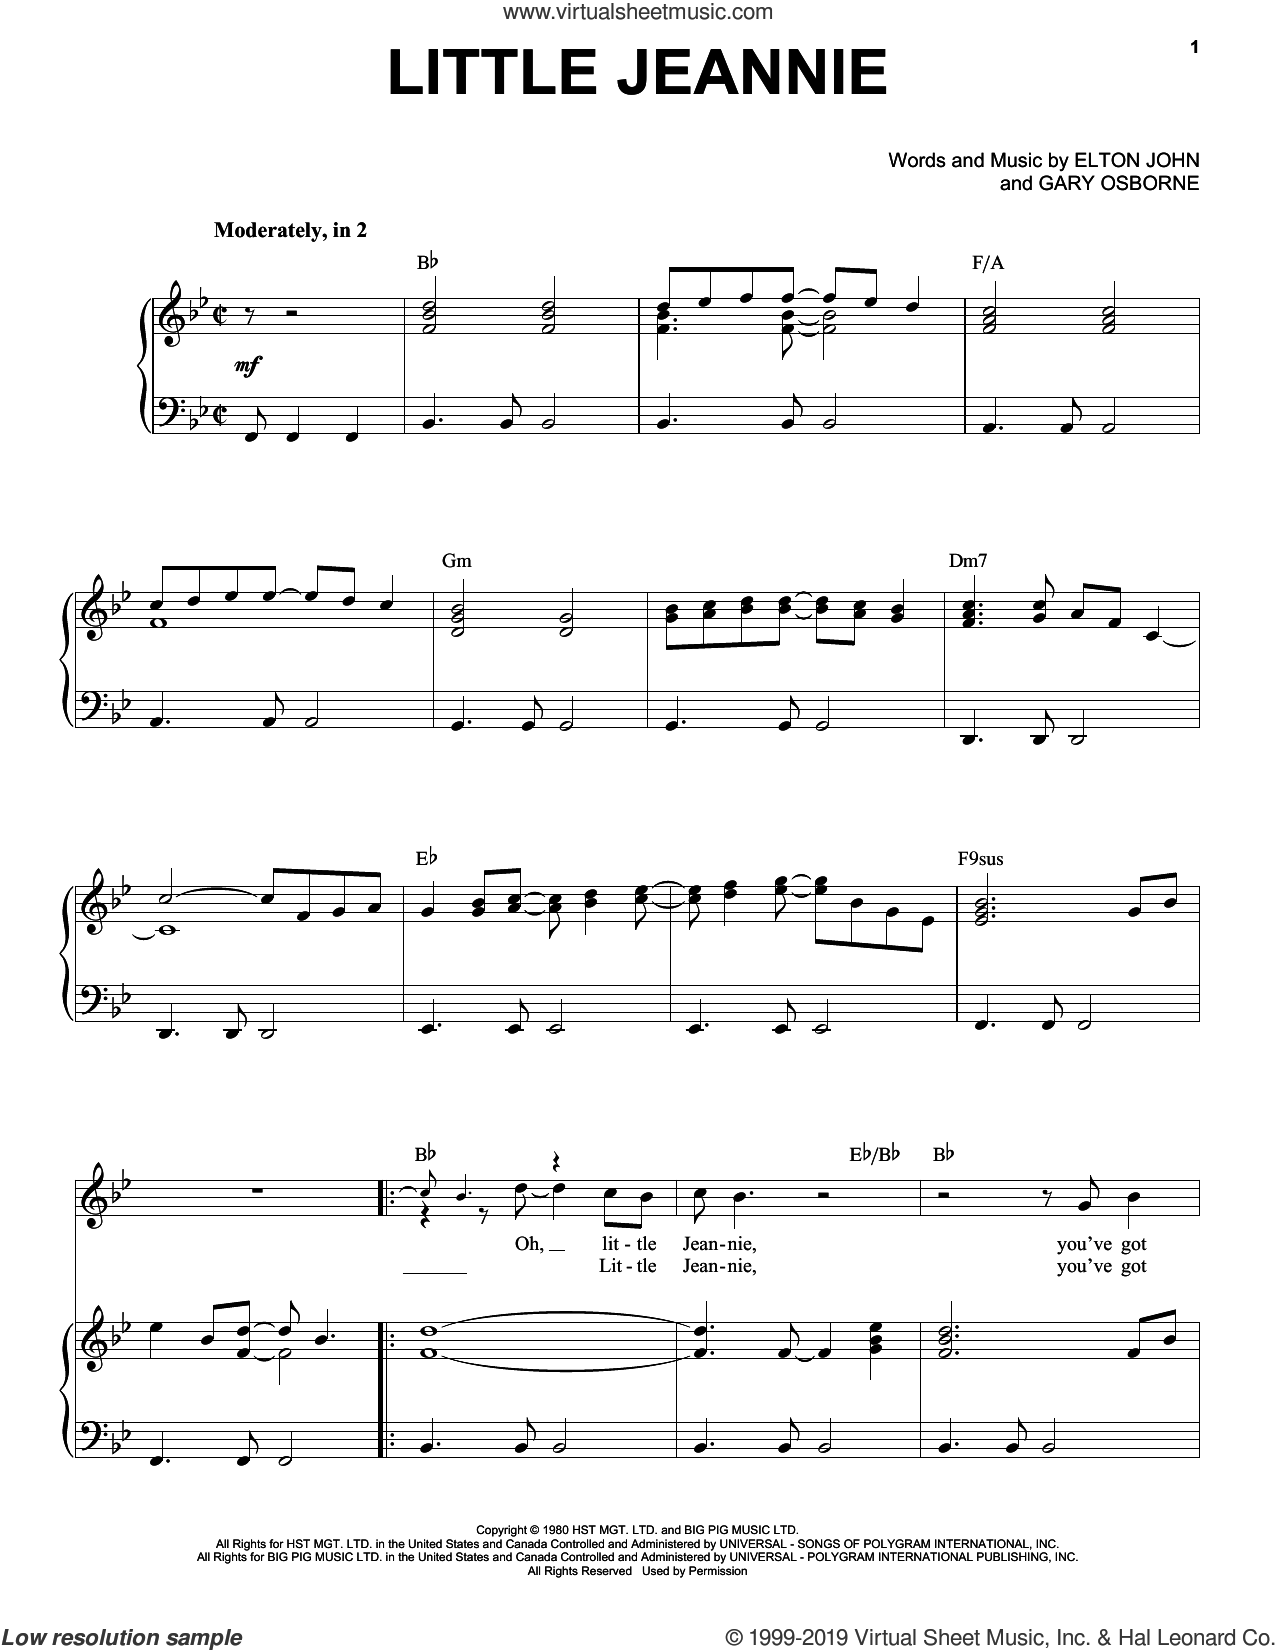 Little Jeannie sheet music for voice and piano by Elton John and Gary Osborne, intermediate skill level